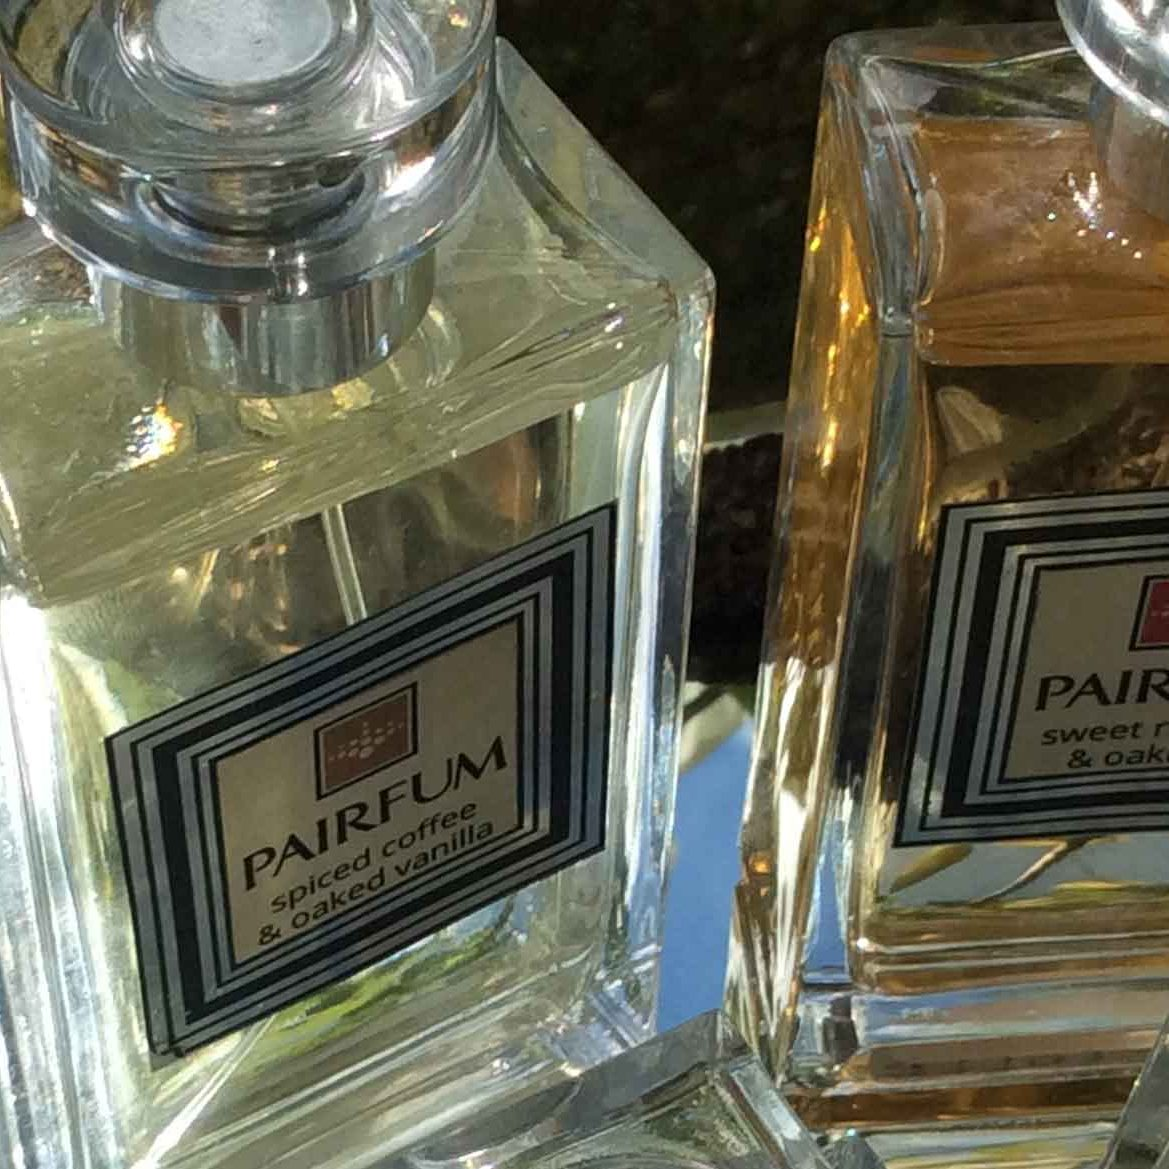 PAIRFUM boutique couture perfume Niche eau de parfum private collection home fragrance skin care sweet rhubarb oakmoss